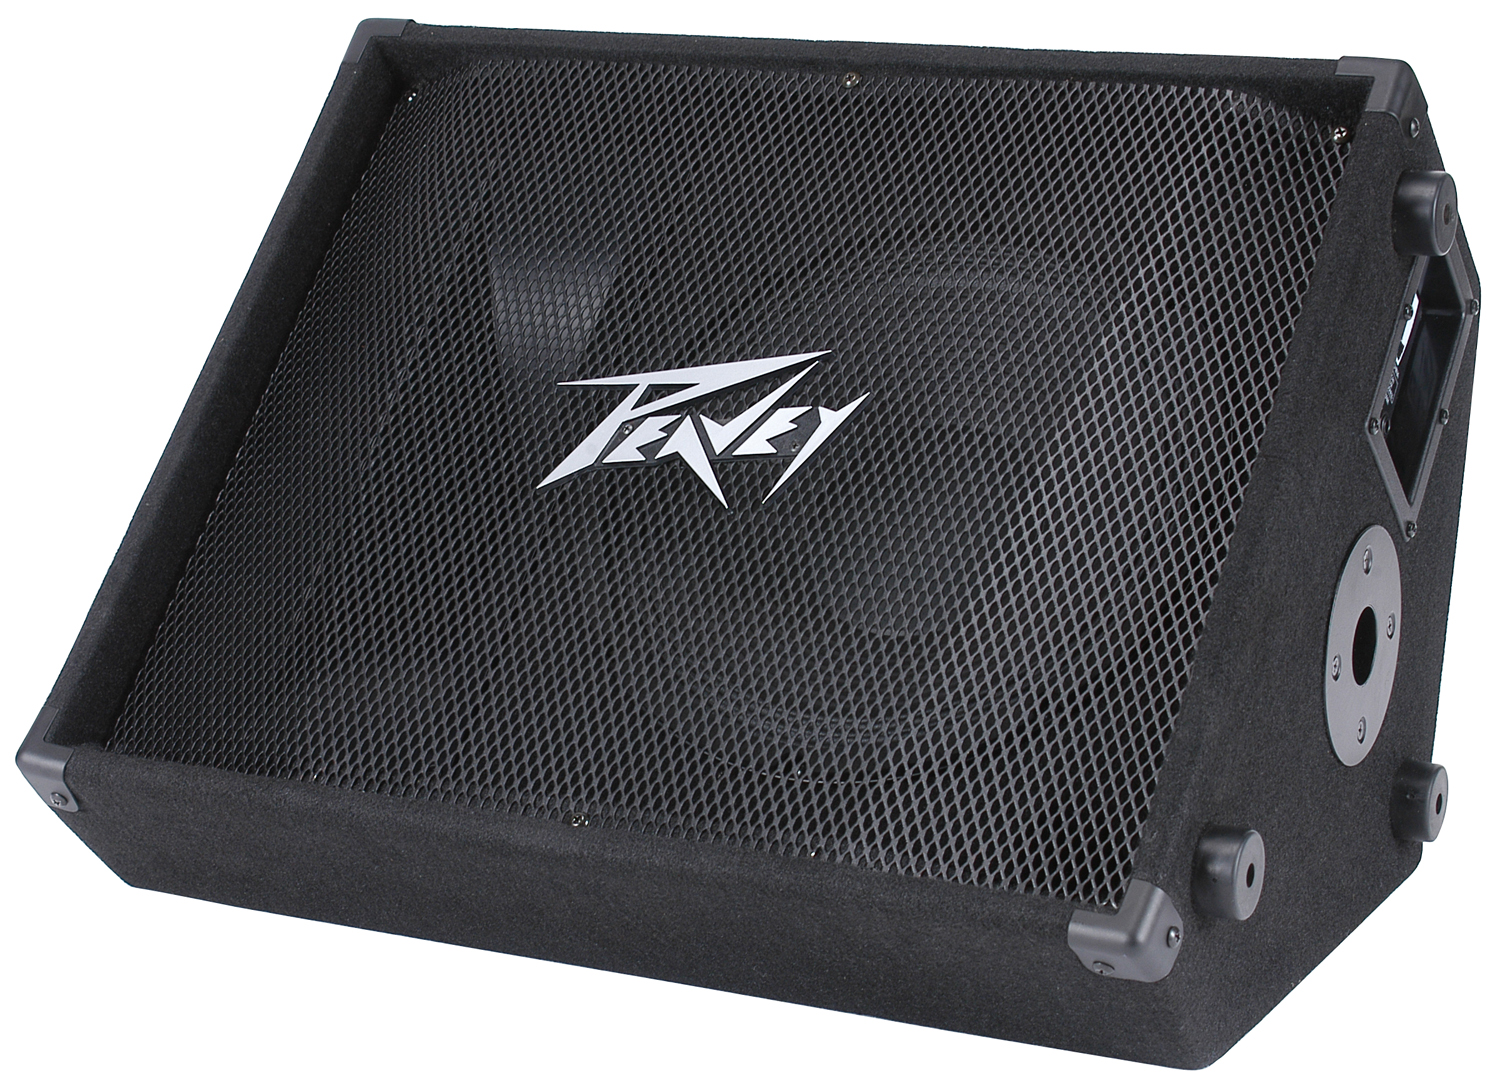 Peavey pv 12m 2 way floor monitor 12 inch 500 watts w for 12 inch floor speakers